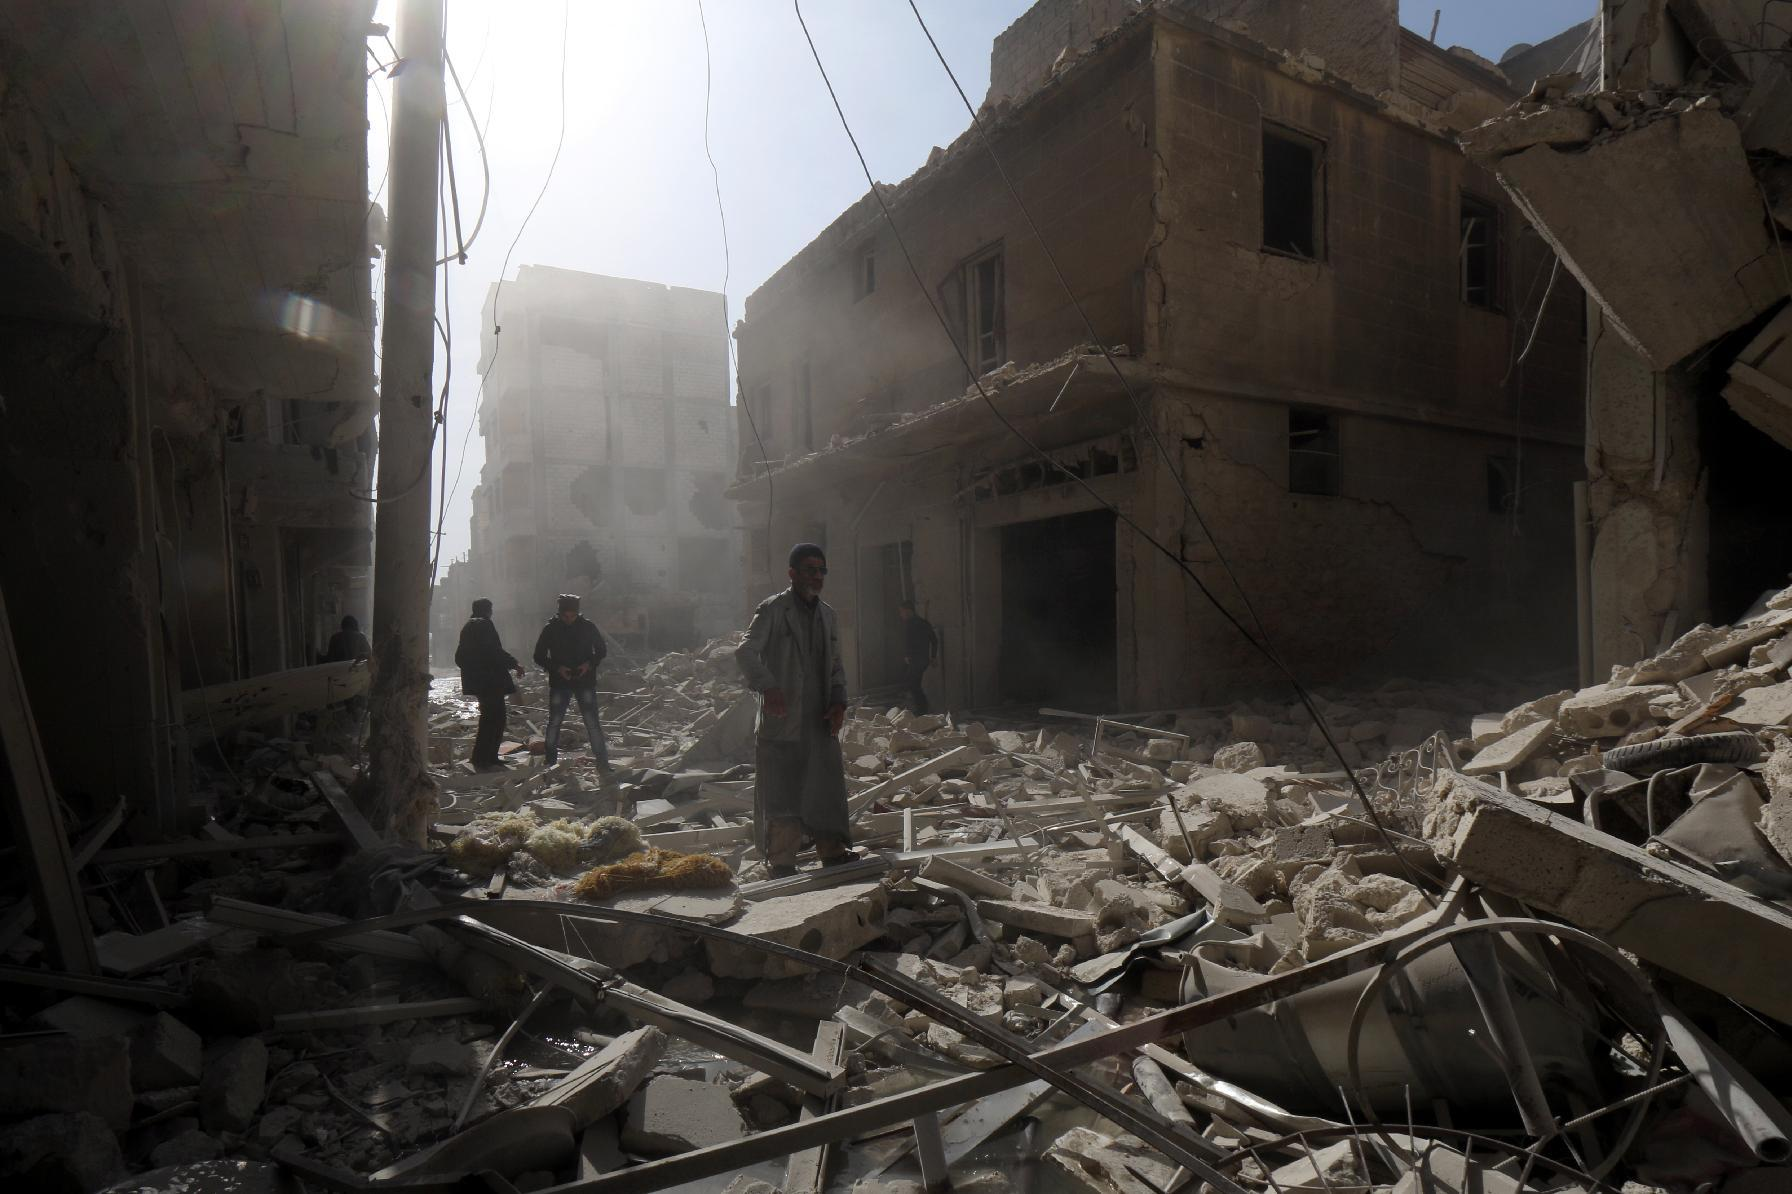 Syrians walk amid the rubble in search for survivors following a reported air strike by Syrian government forces in the Maysar neighbourhood of Aleppo on February 7, 2015 (AFP Photo/Zein Al-Rifai)